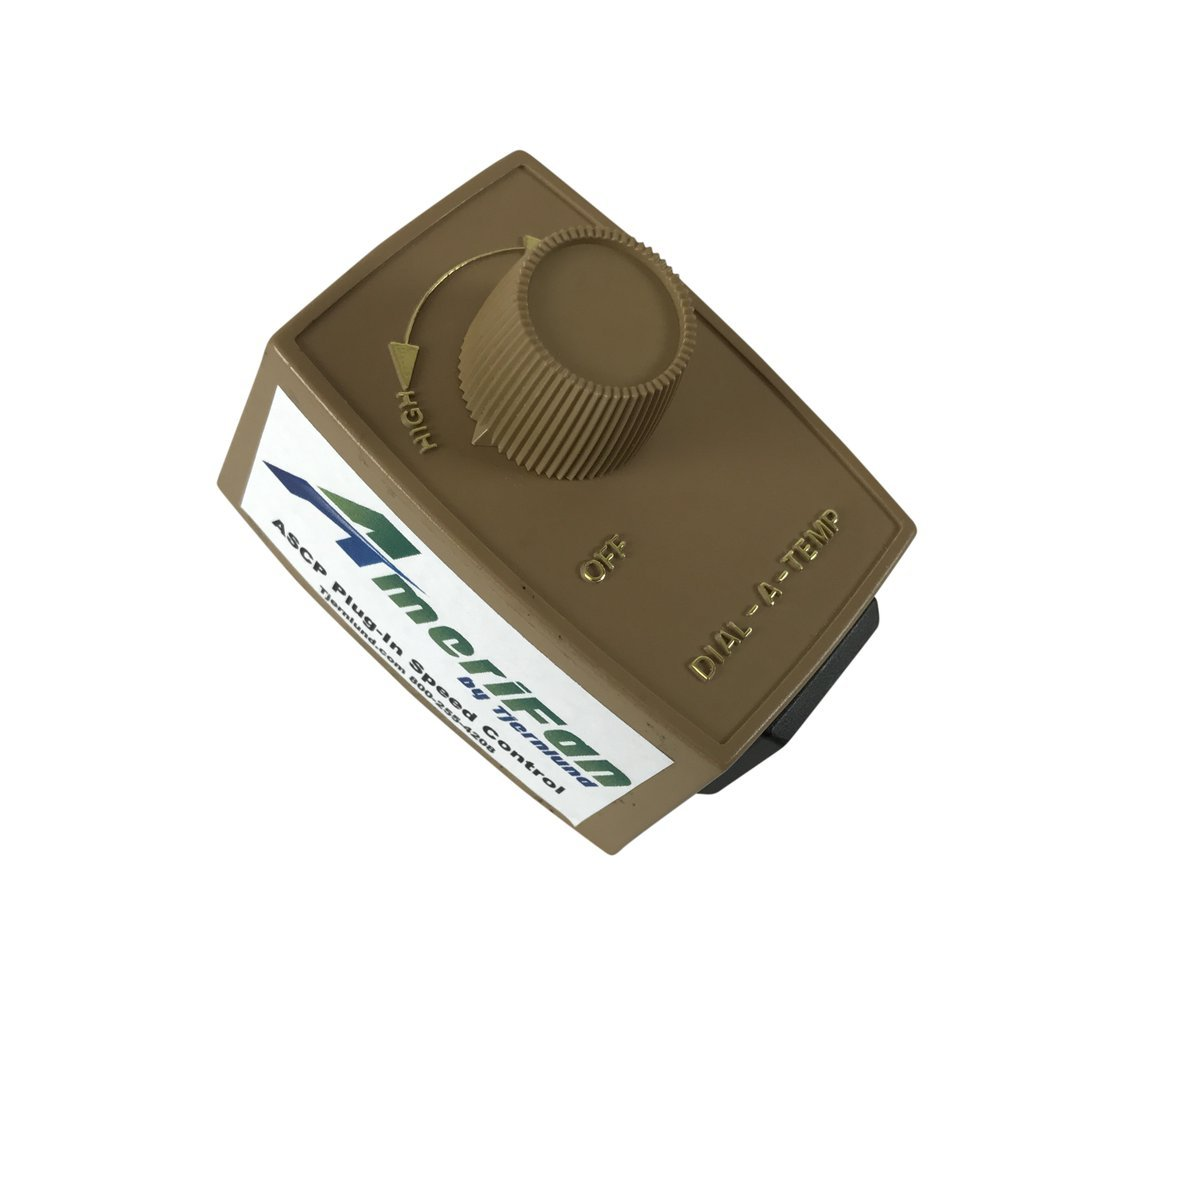 AmeriFan Duct Booster Exhaust, for Growing, Hydroponics, Heating, Cooling, Venting, HVAC, Steel, 120V Supply Voltage